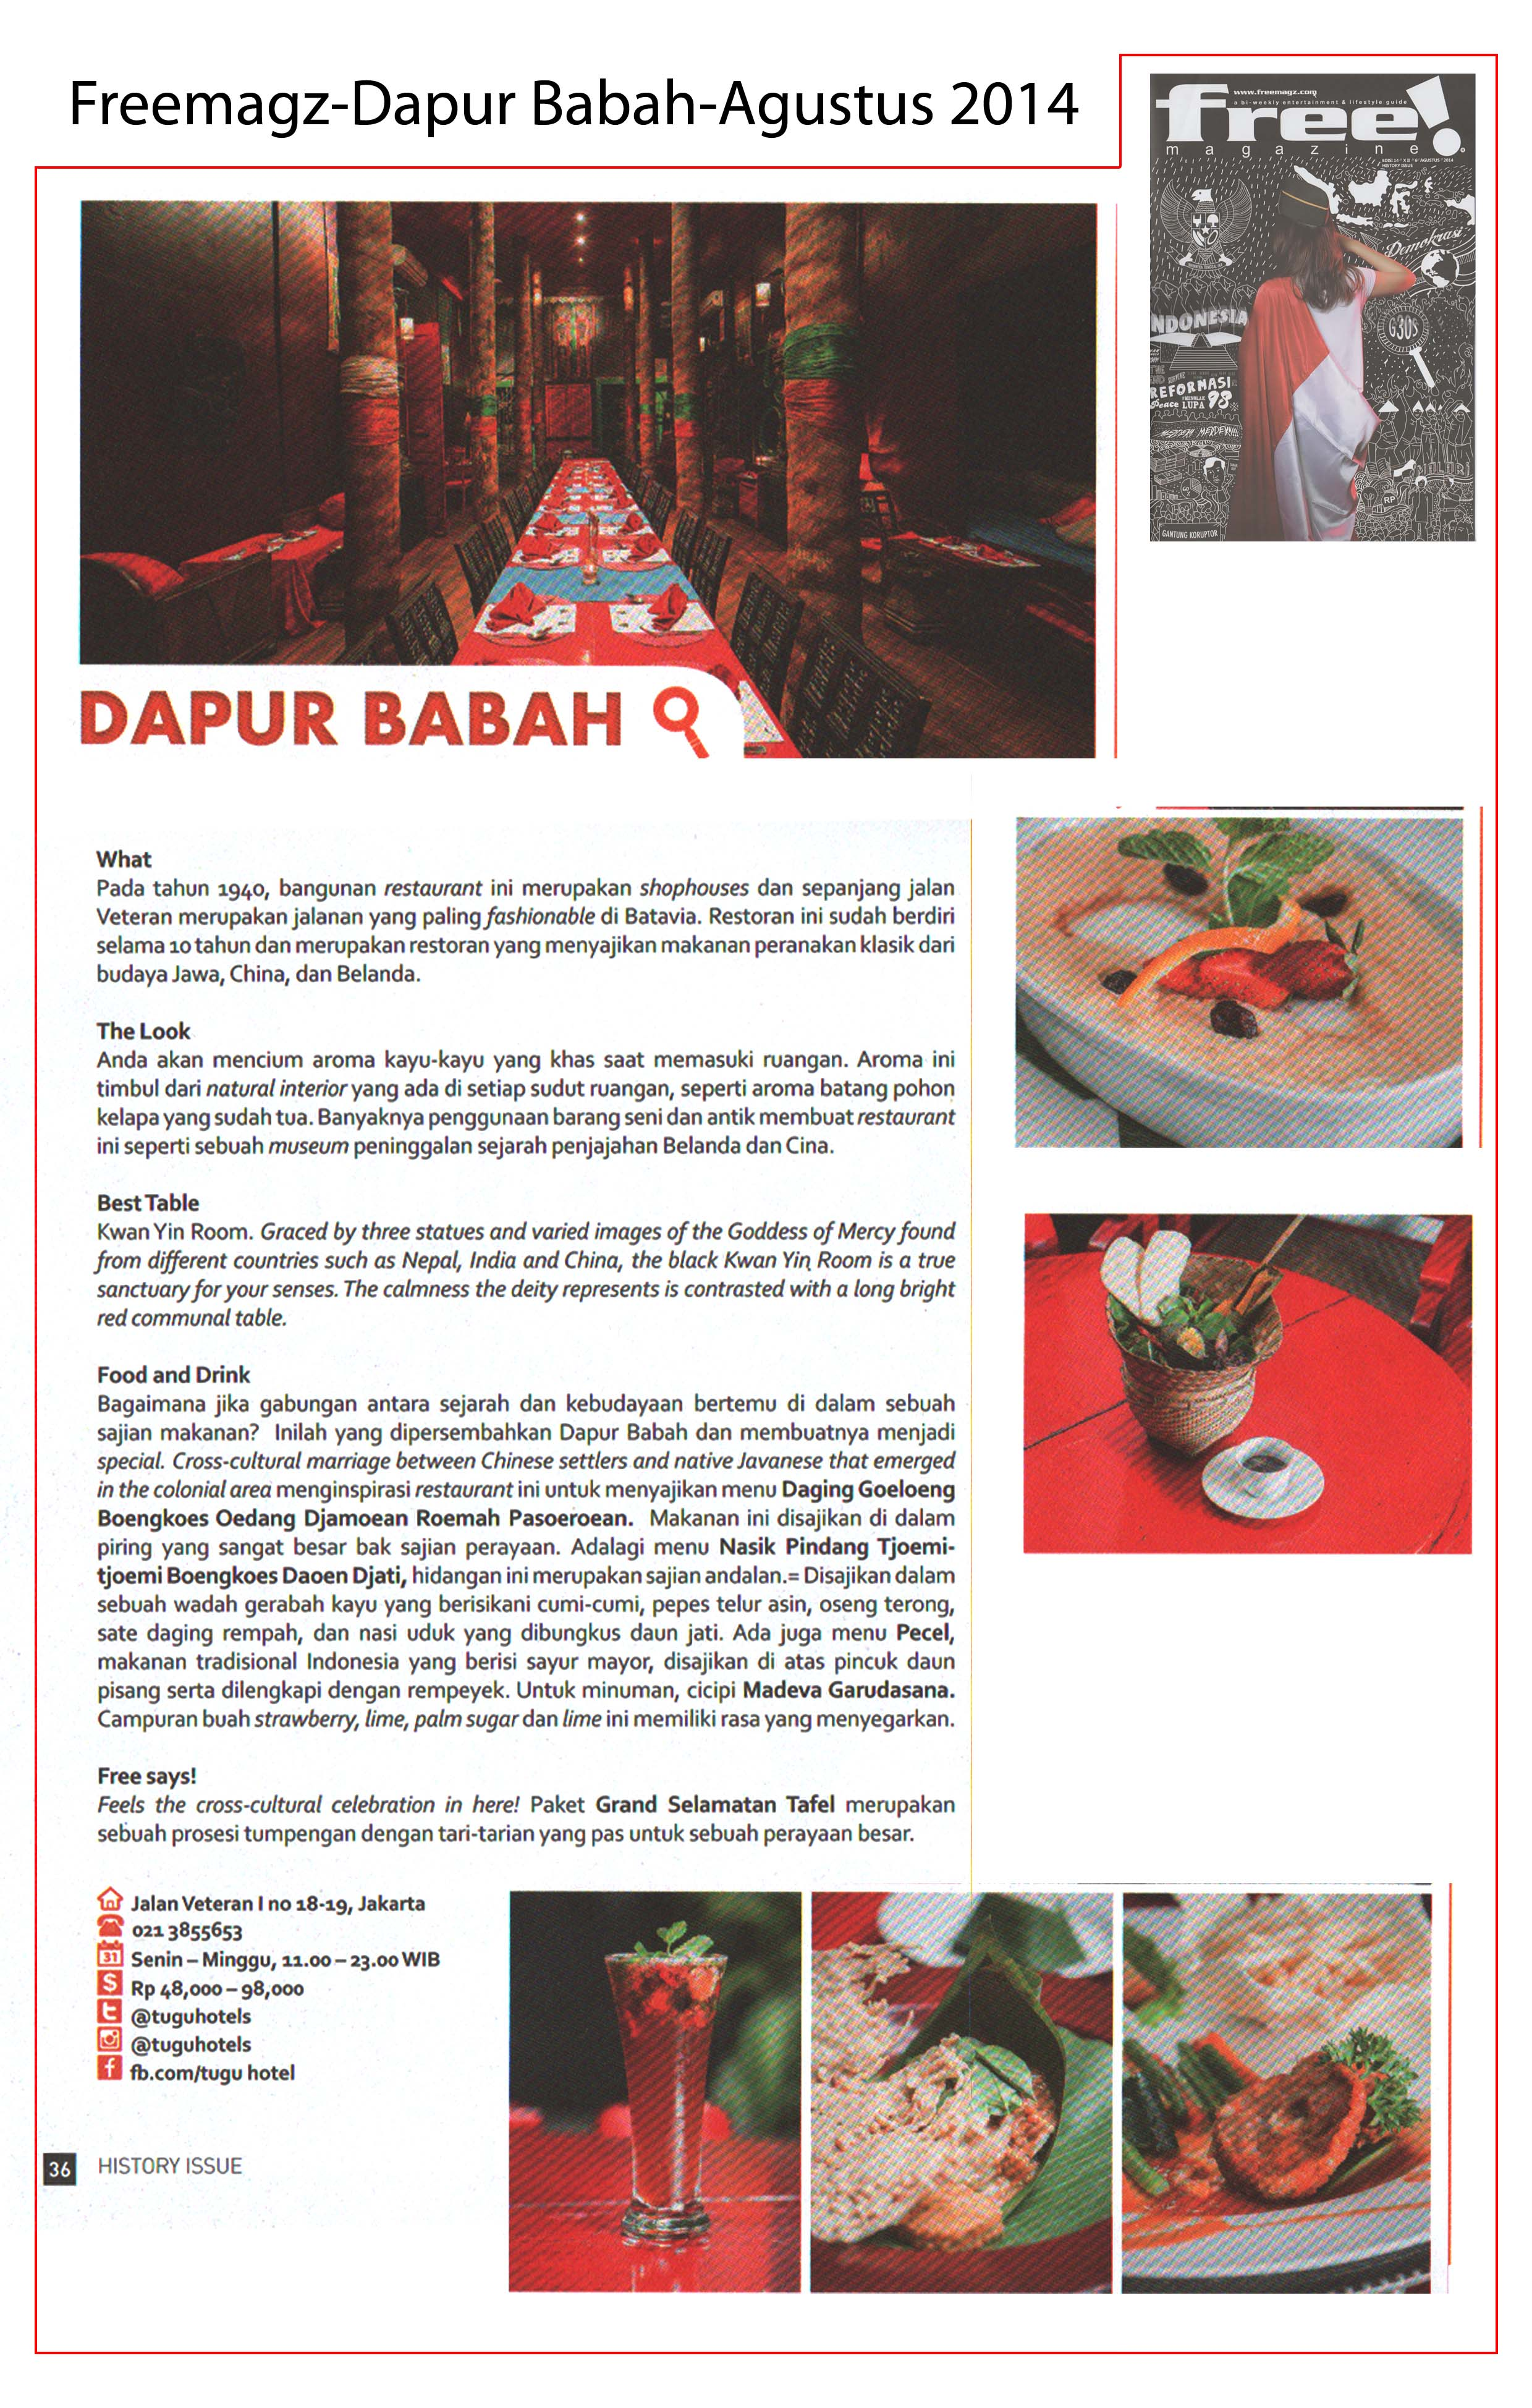 freemagz - dapurbabah august 2014